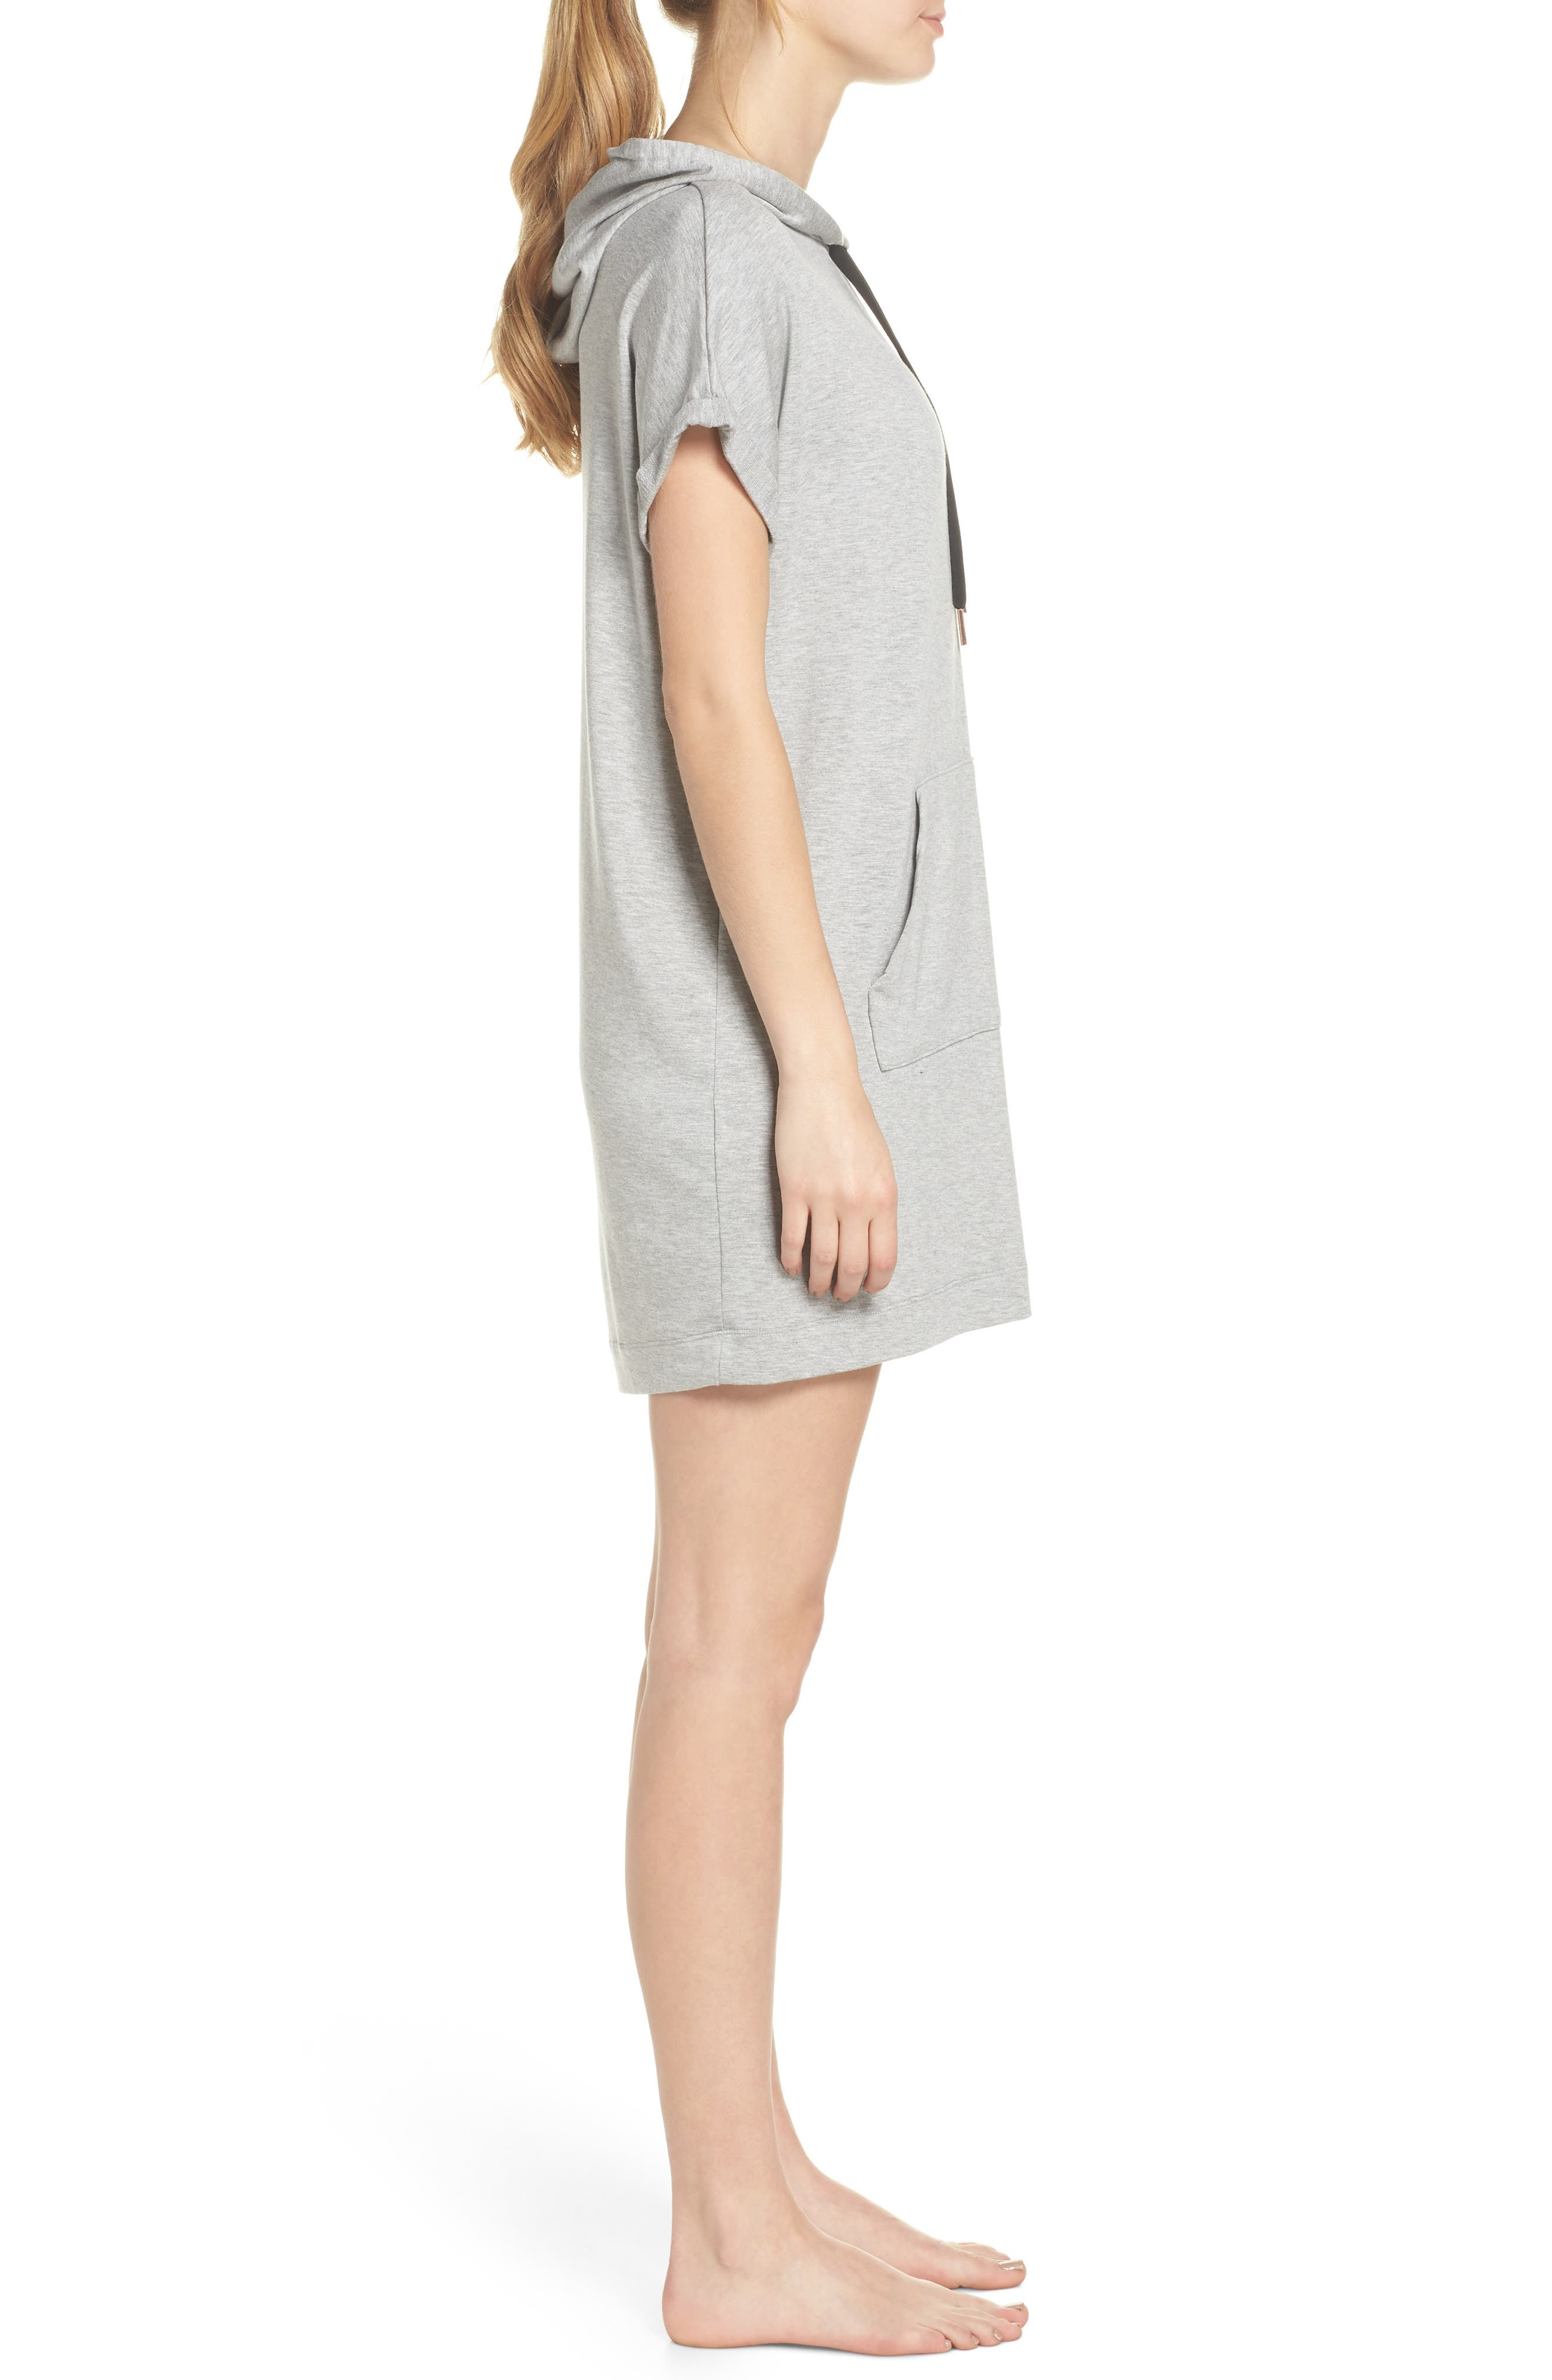 It's All Hoodie Hooded Sweatshirt Dress,                             Alternate thumbnail 6, color,                             Light Heather Gray